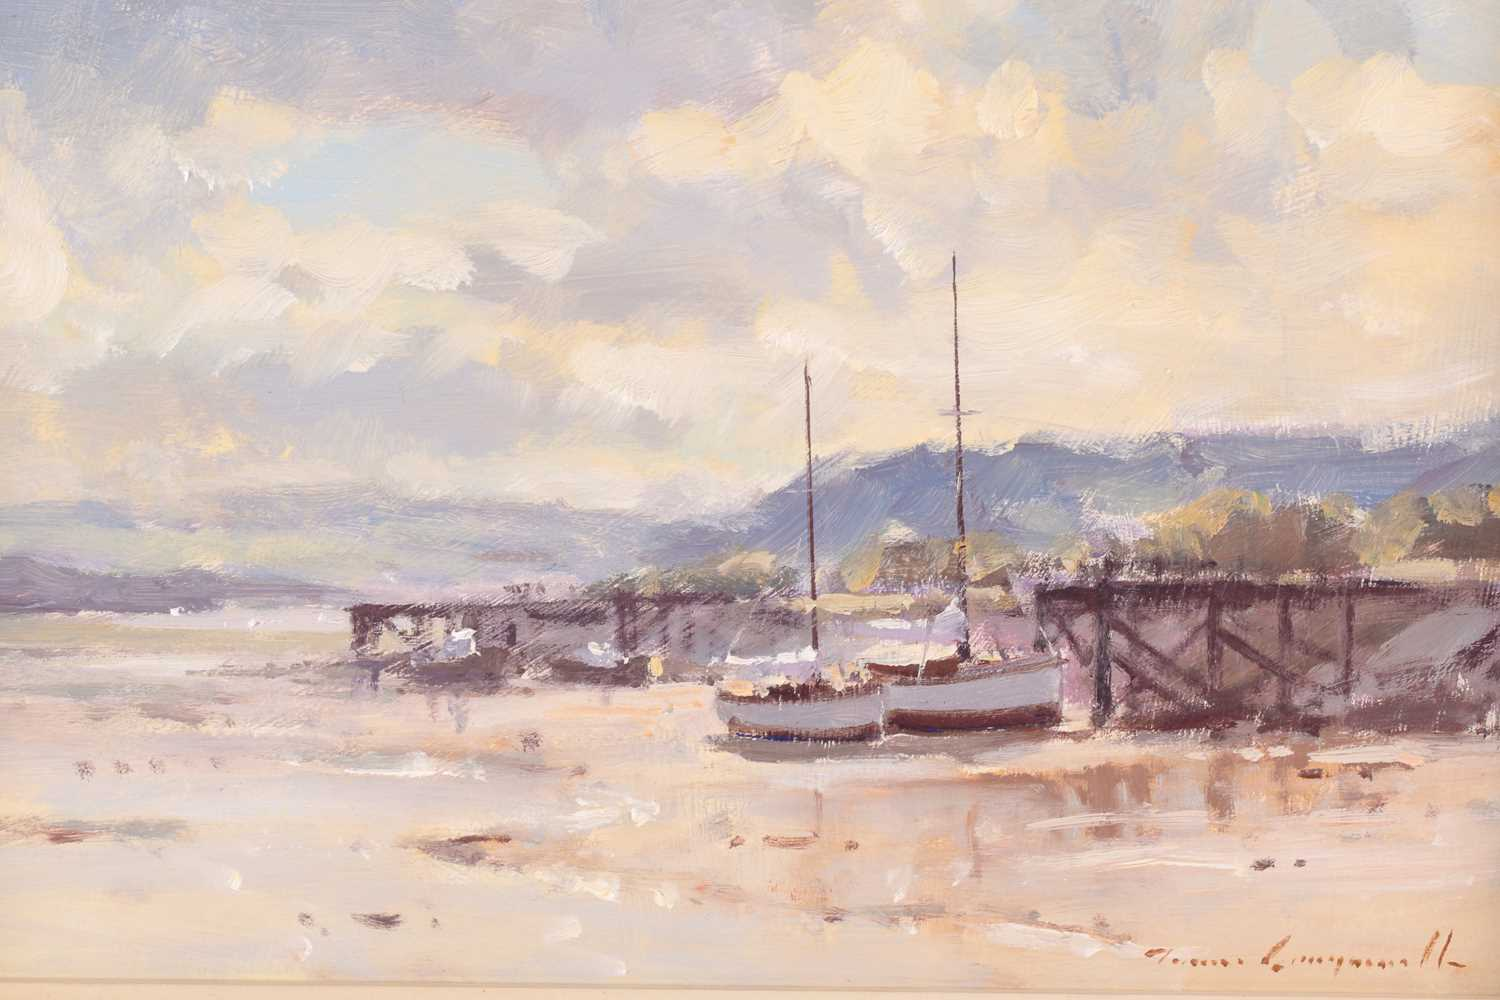 James Longueville, (B. 1942), Low tide, Deganway, North Wales, oil on canvas board, signed lower - Image 2 of 4